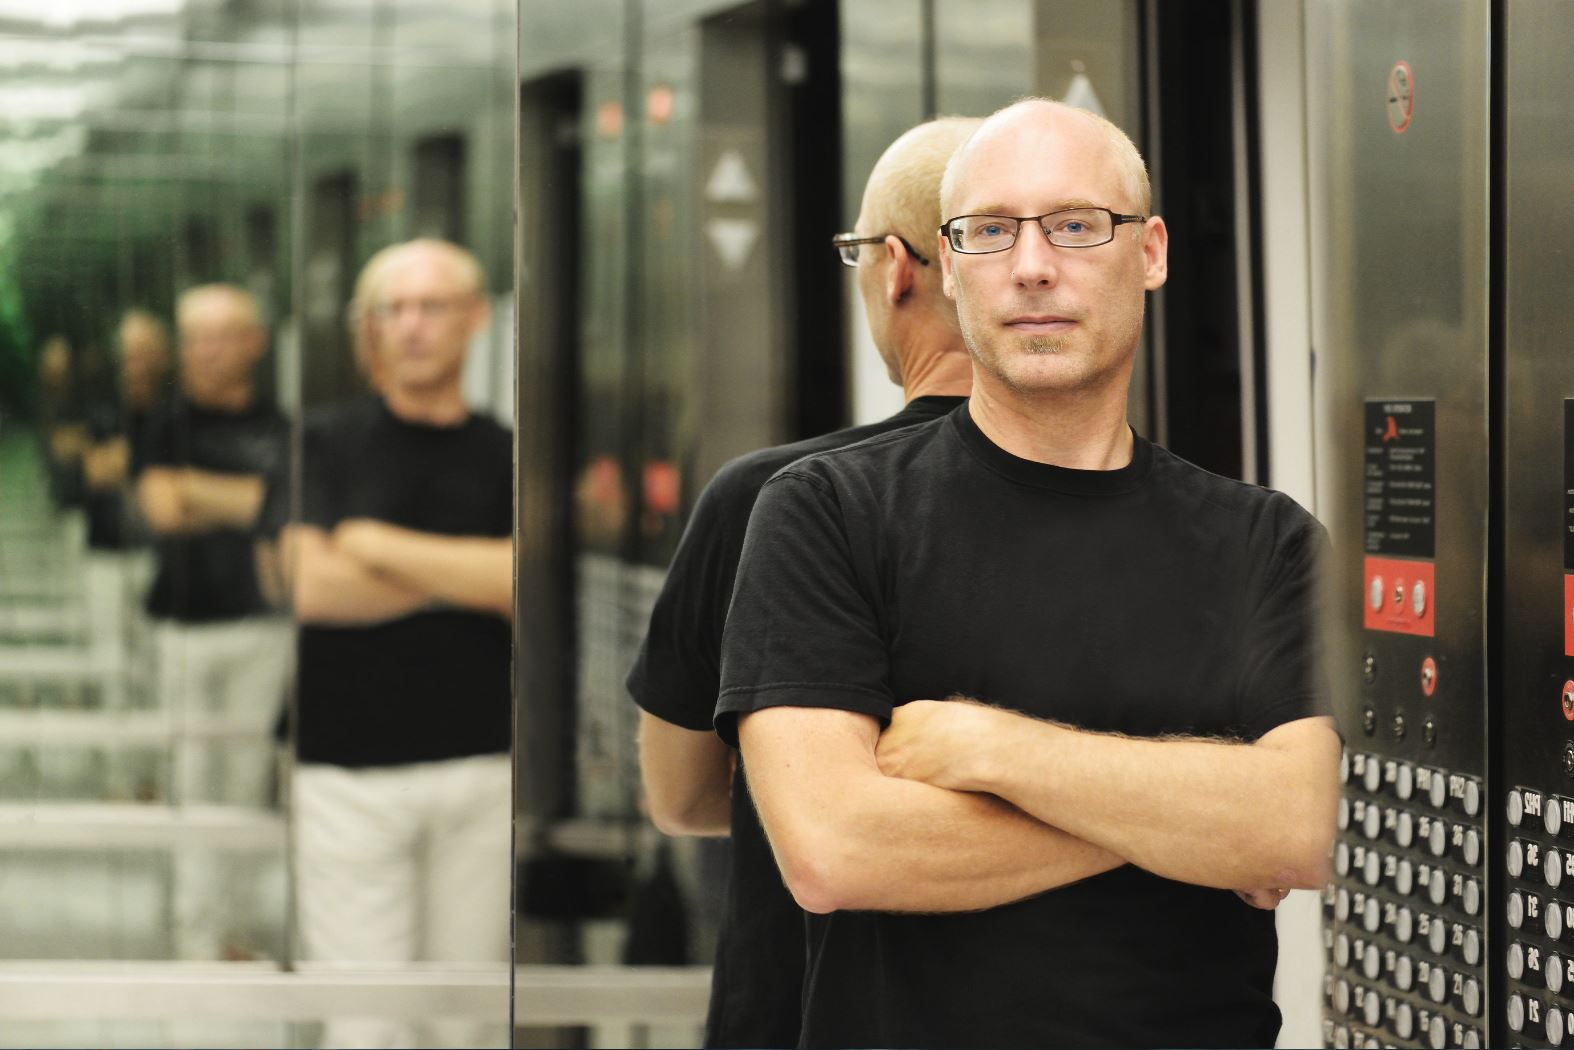 """Lansing McLoskey, composer of the piece """"Zealot Canticles: An oratorio for tolerance."""" Conductor Donald Nally and The Crossing (a professional chamber choir) won a Grammy Award for the Best Choral Performance of McLoskey's piece in 2019."""